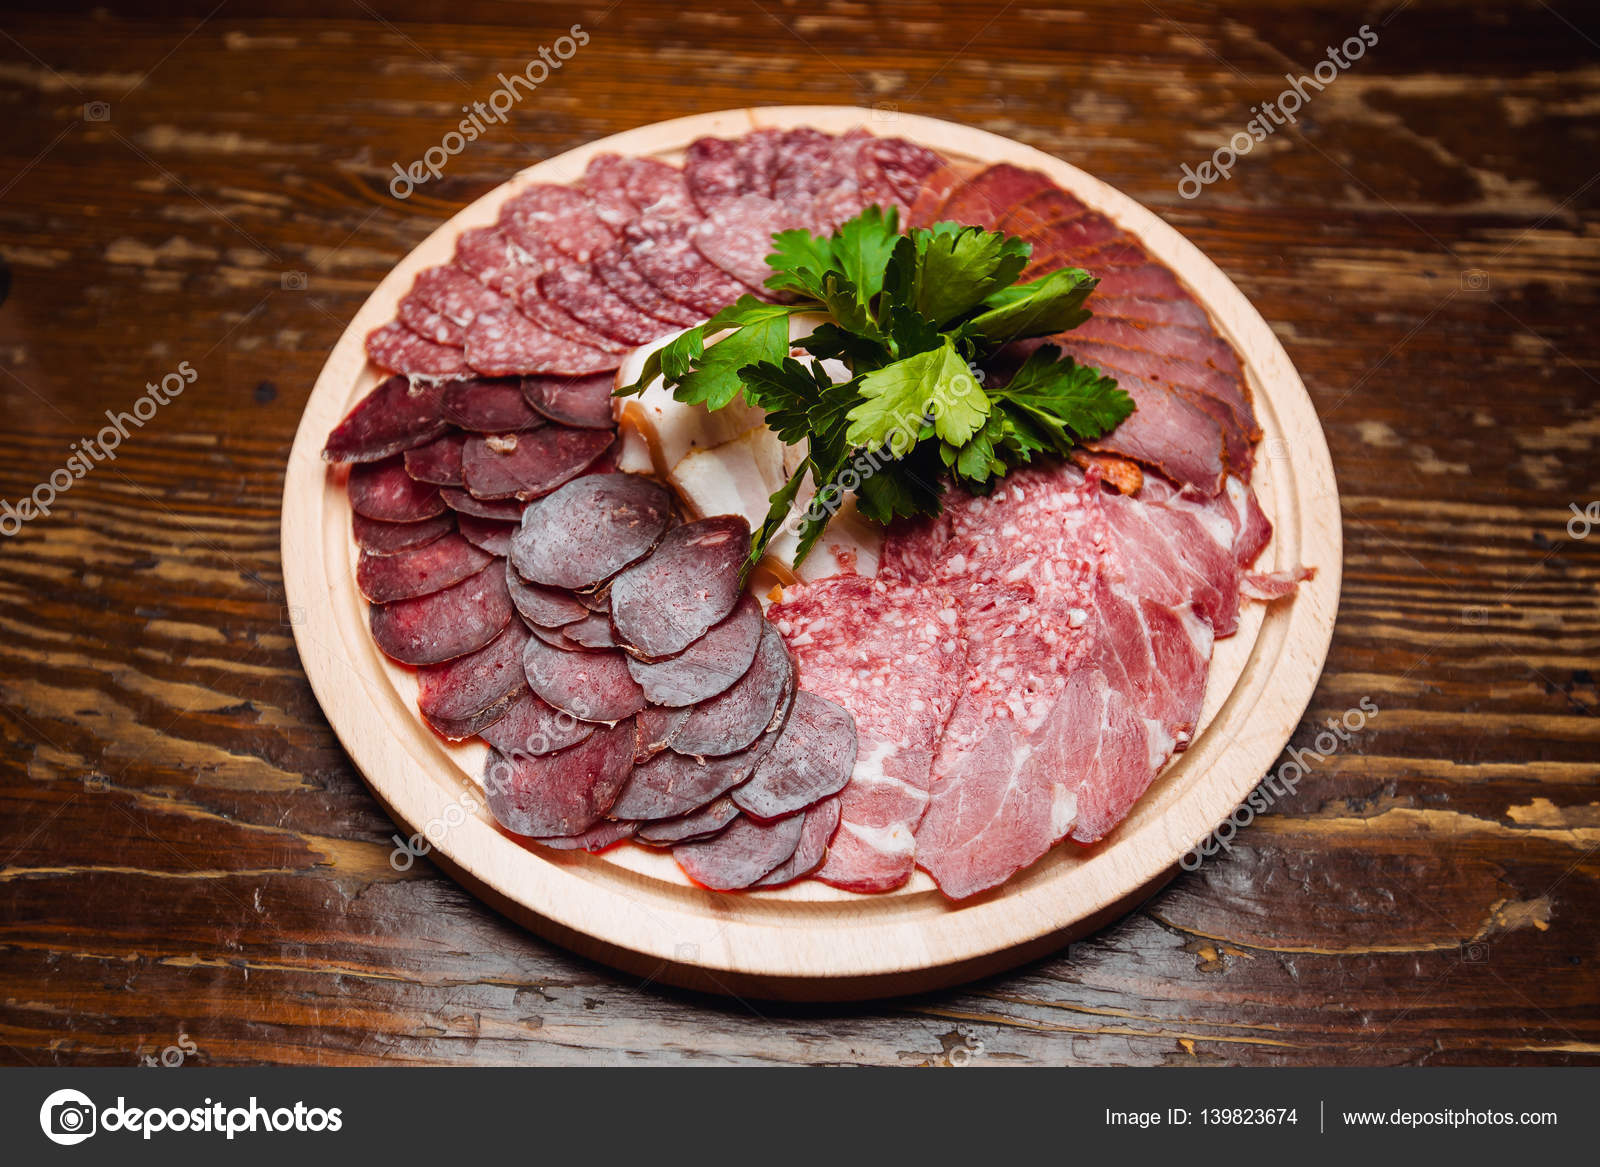 Beef Stock Kaufen A Plate Of Cold Meats Stock Photo Alexshyripa 139823674